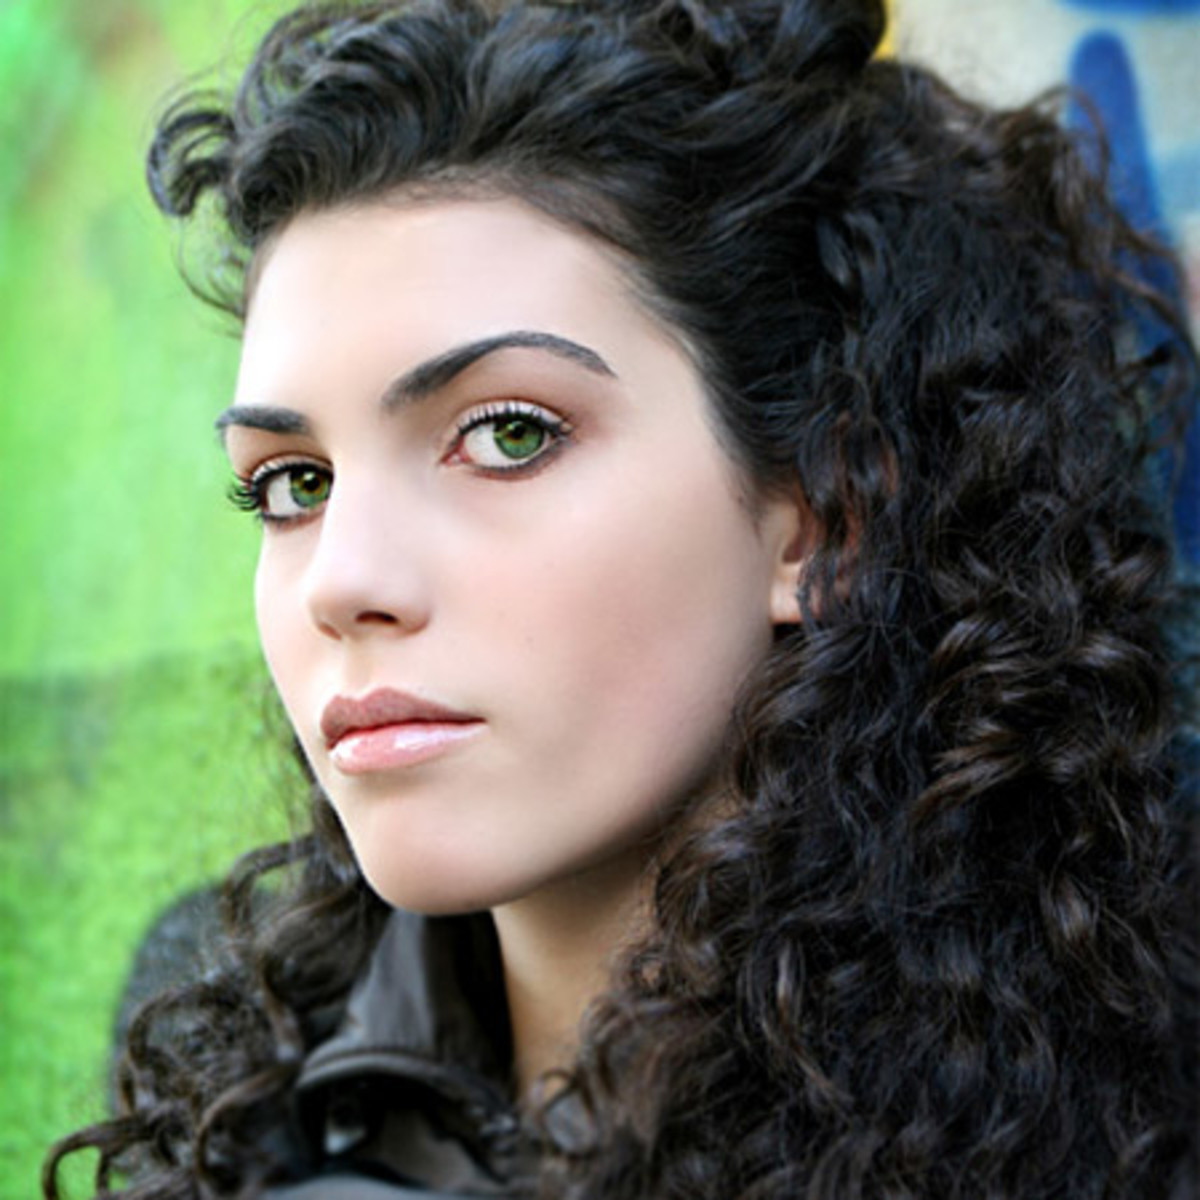 Best eyeshadow, blush, and lipstick colors for black hair and green eyes